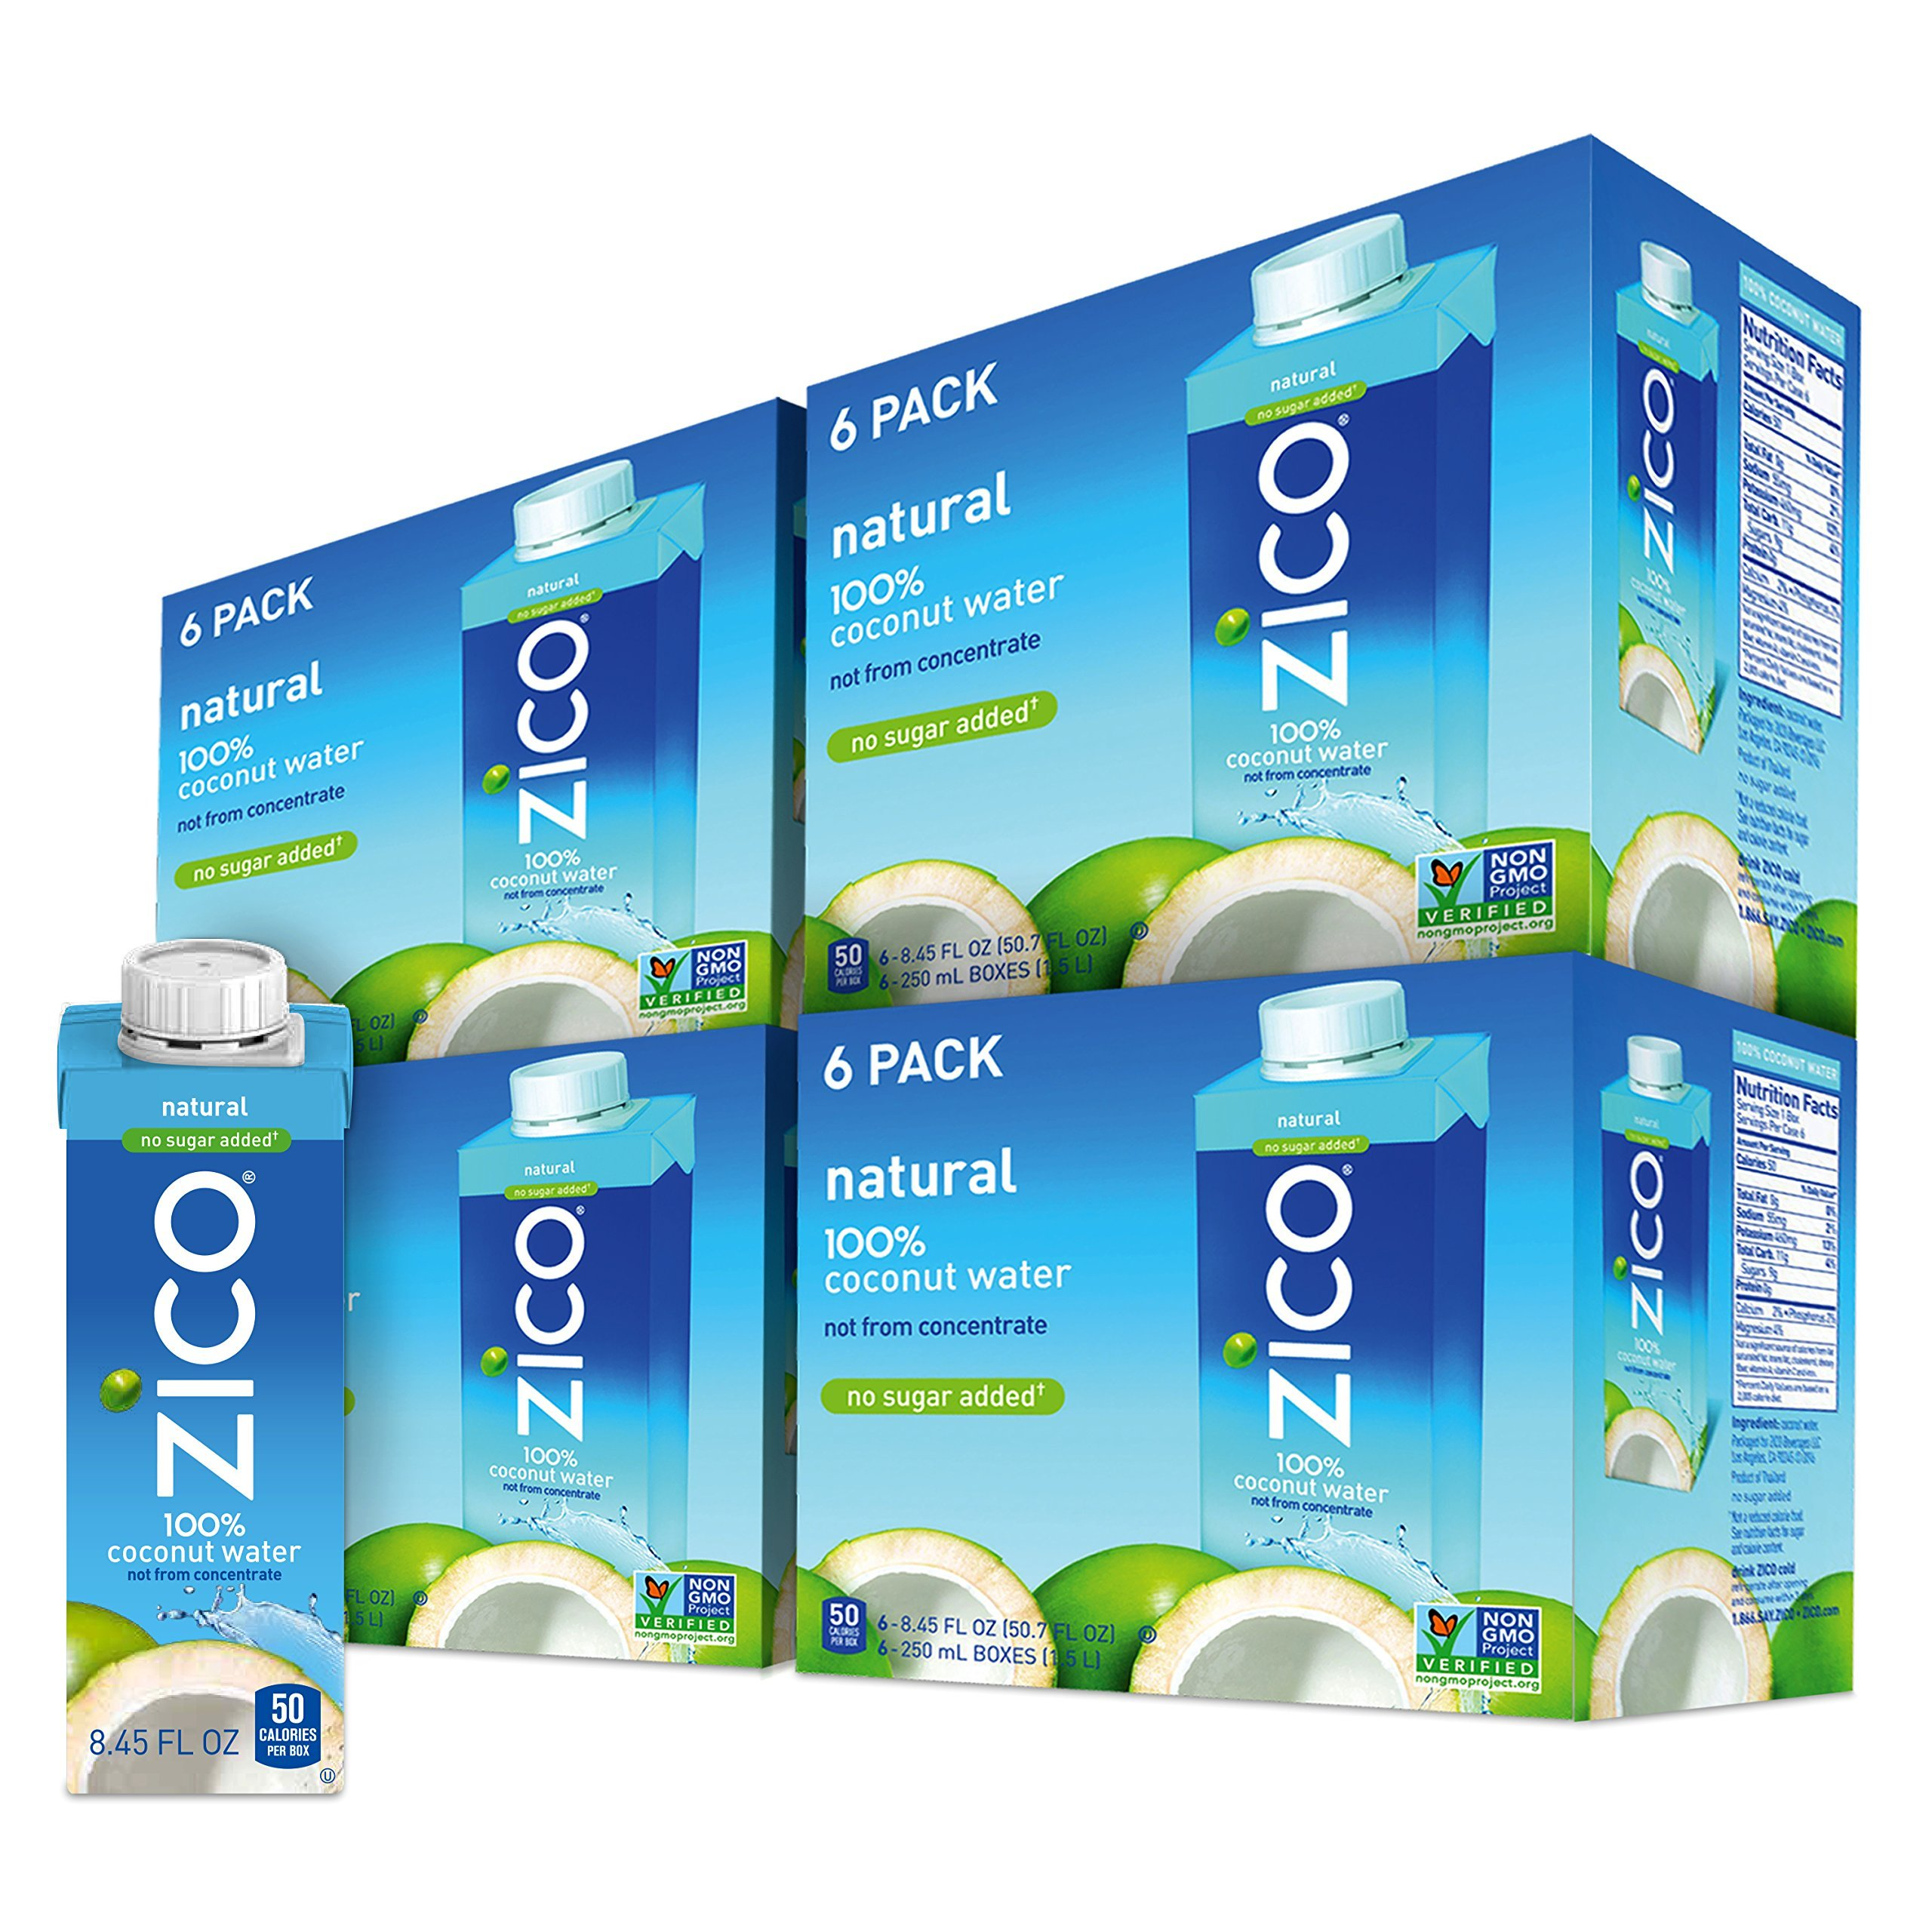 Zico Beverages Premium 2-Pack Natural Coconut Water Drinks, No Sugar Added Gluten Free, 8.45 Fluid Ounce (Pack of 24) by Zico Beverages